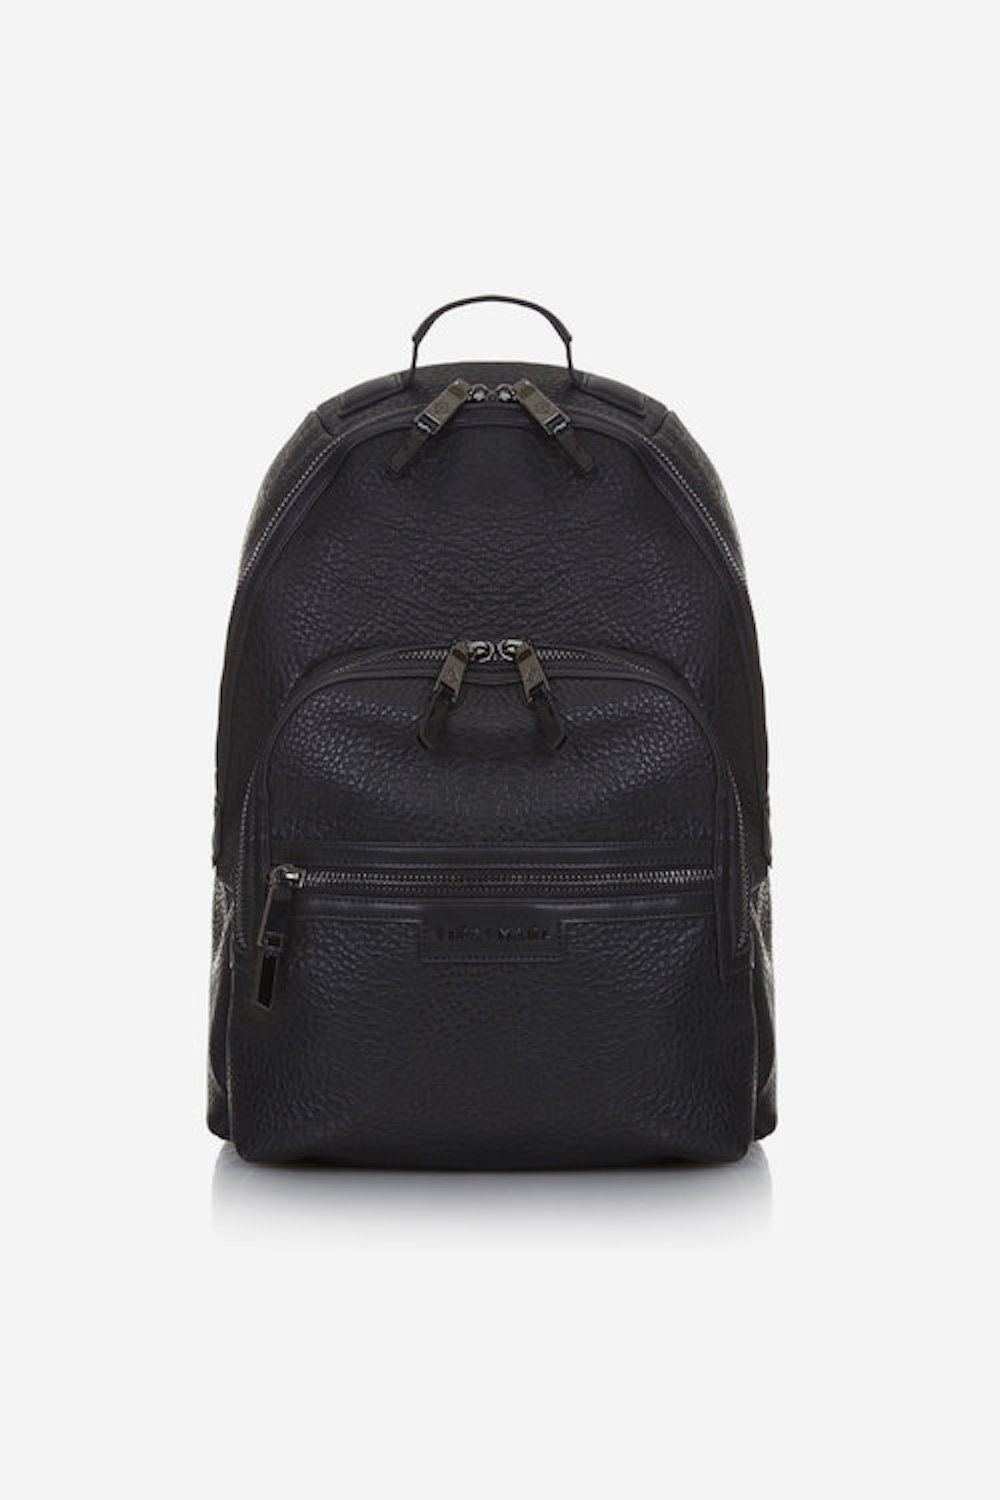 Tiba + Marl Elwood Backpack £130